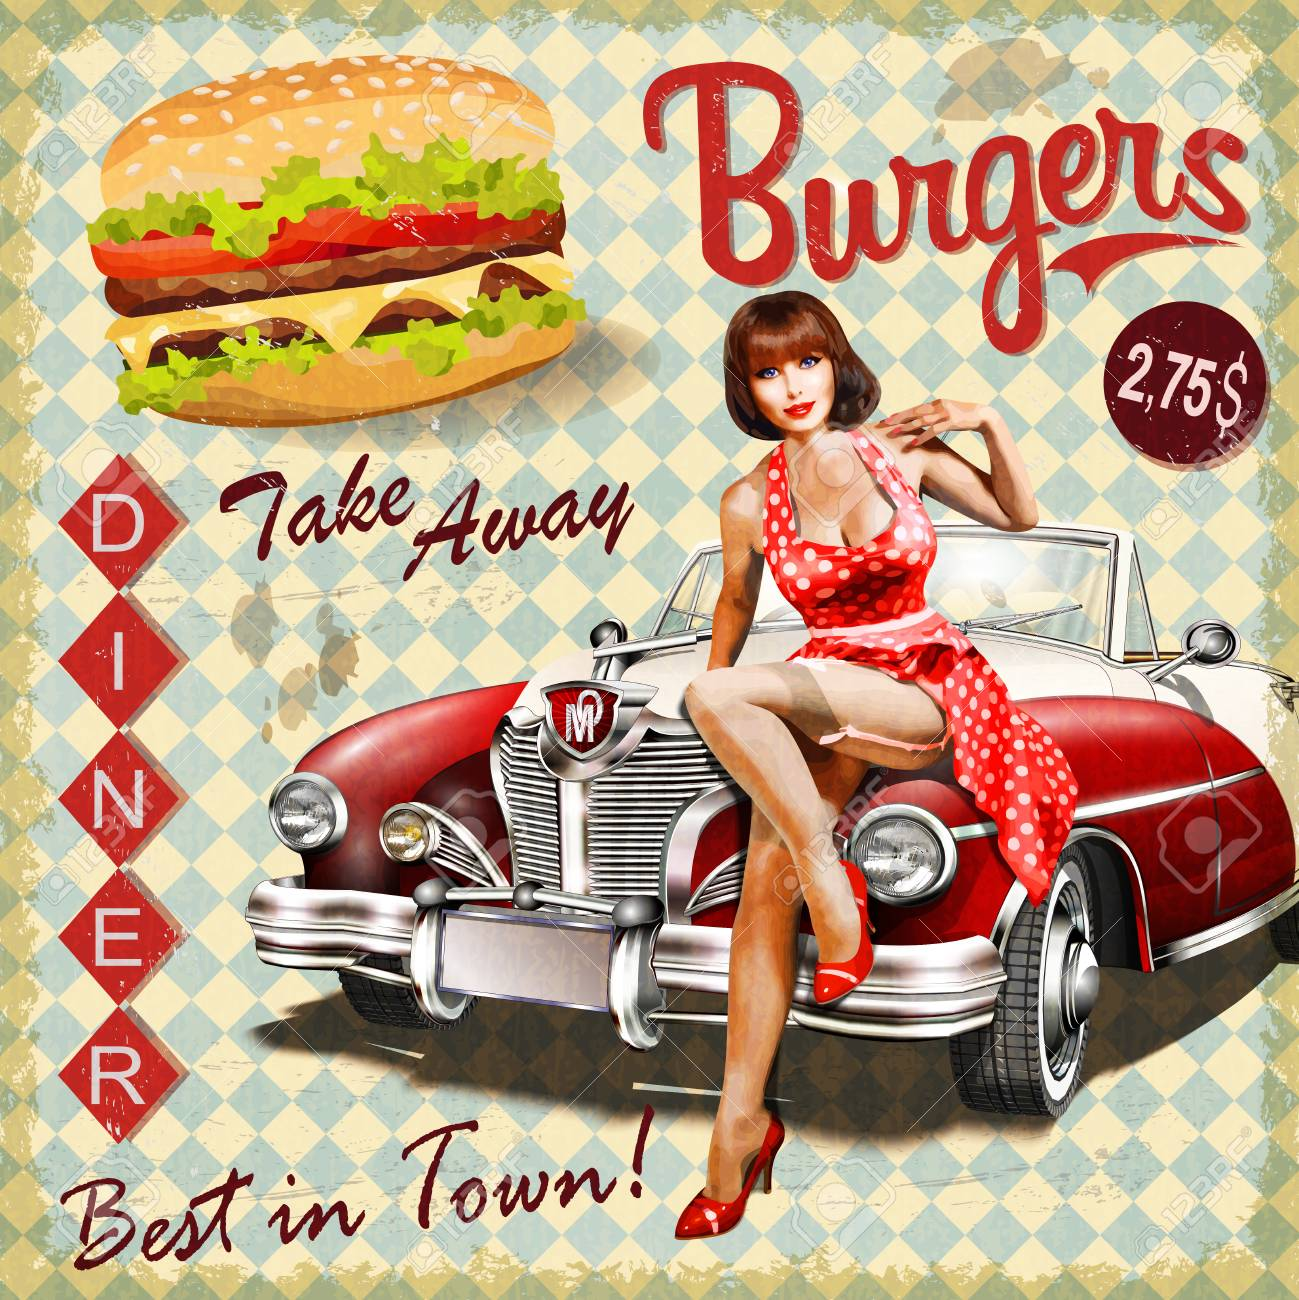 Burger vintage poster with pin-up girl and retro car. - 93083106